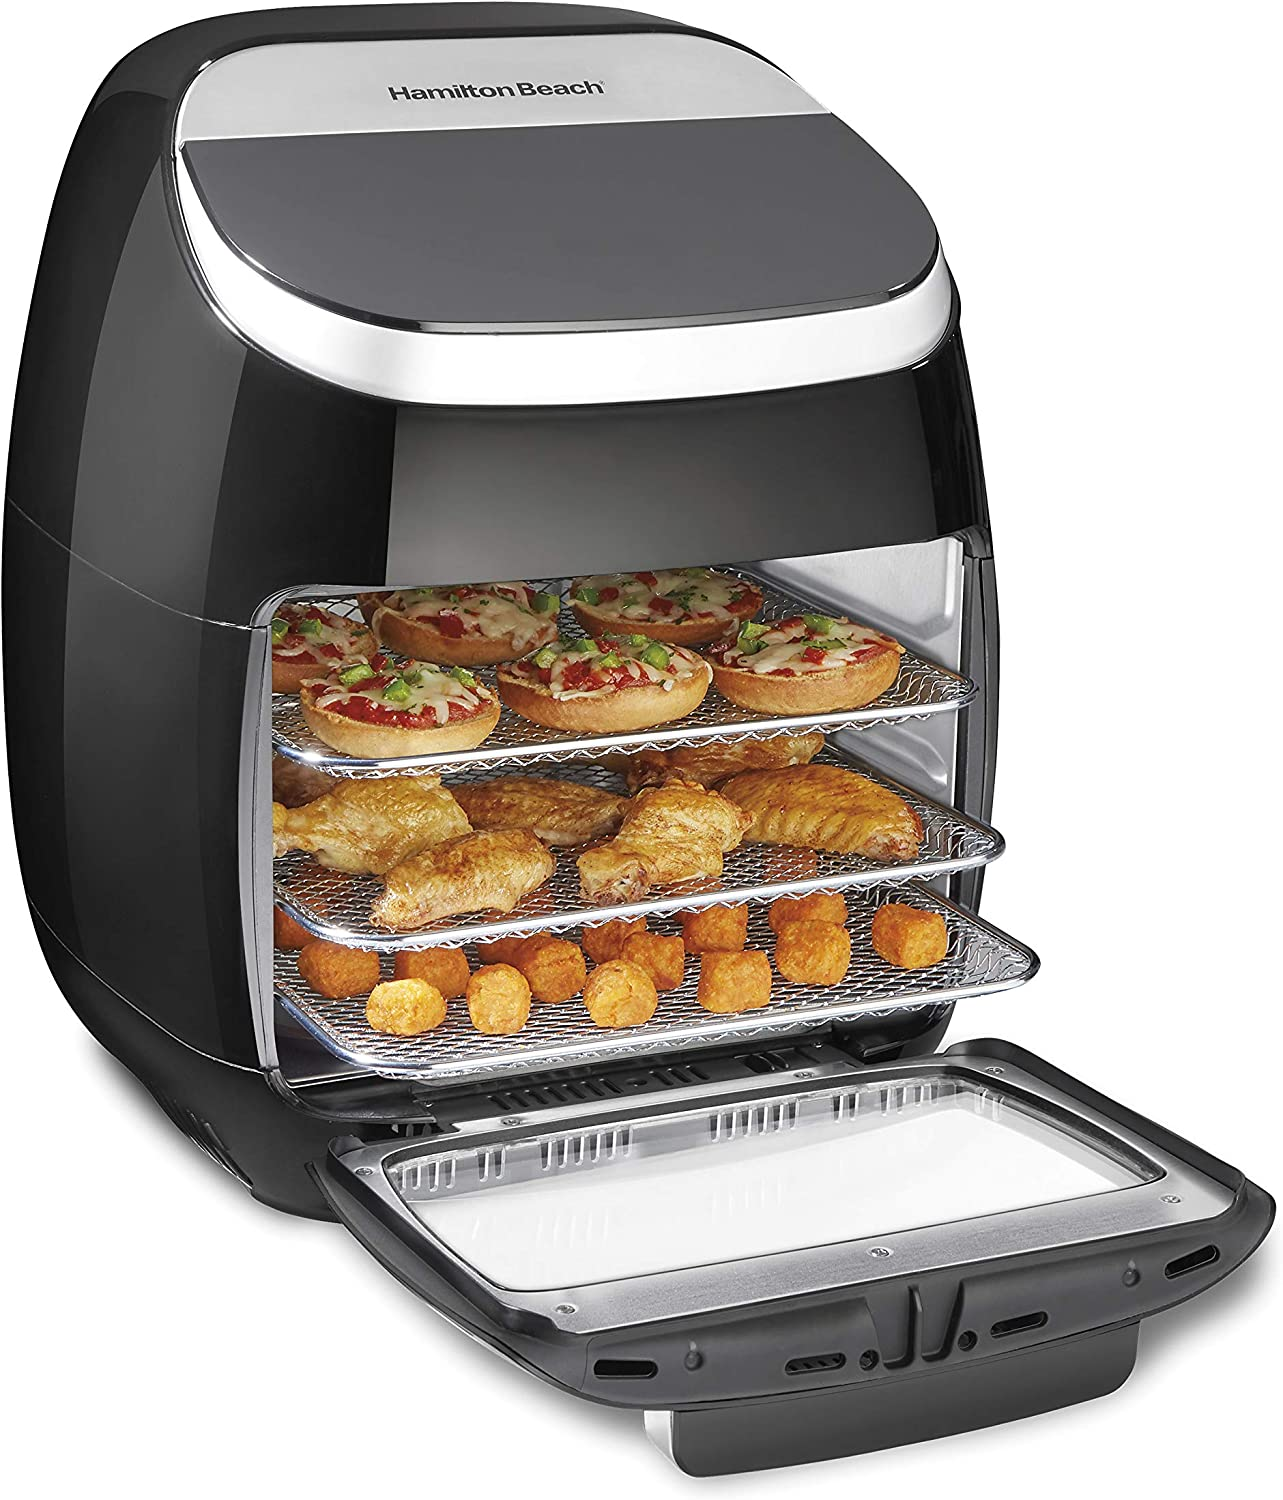 air fryer oven basket not rotating